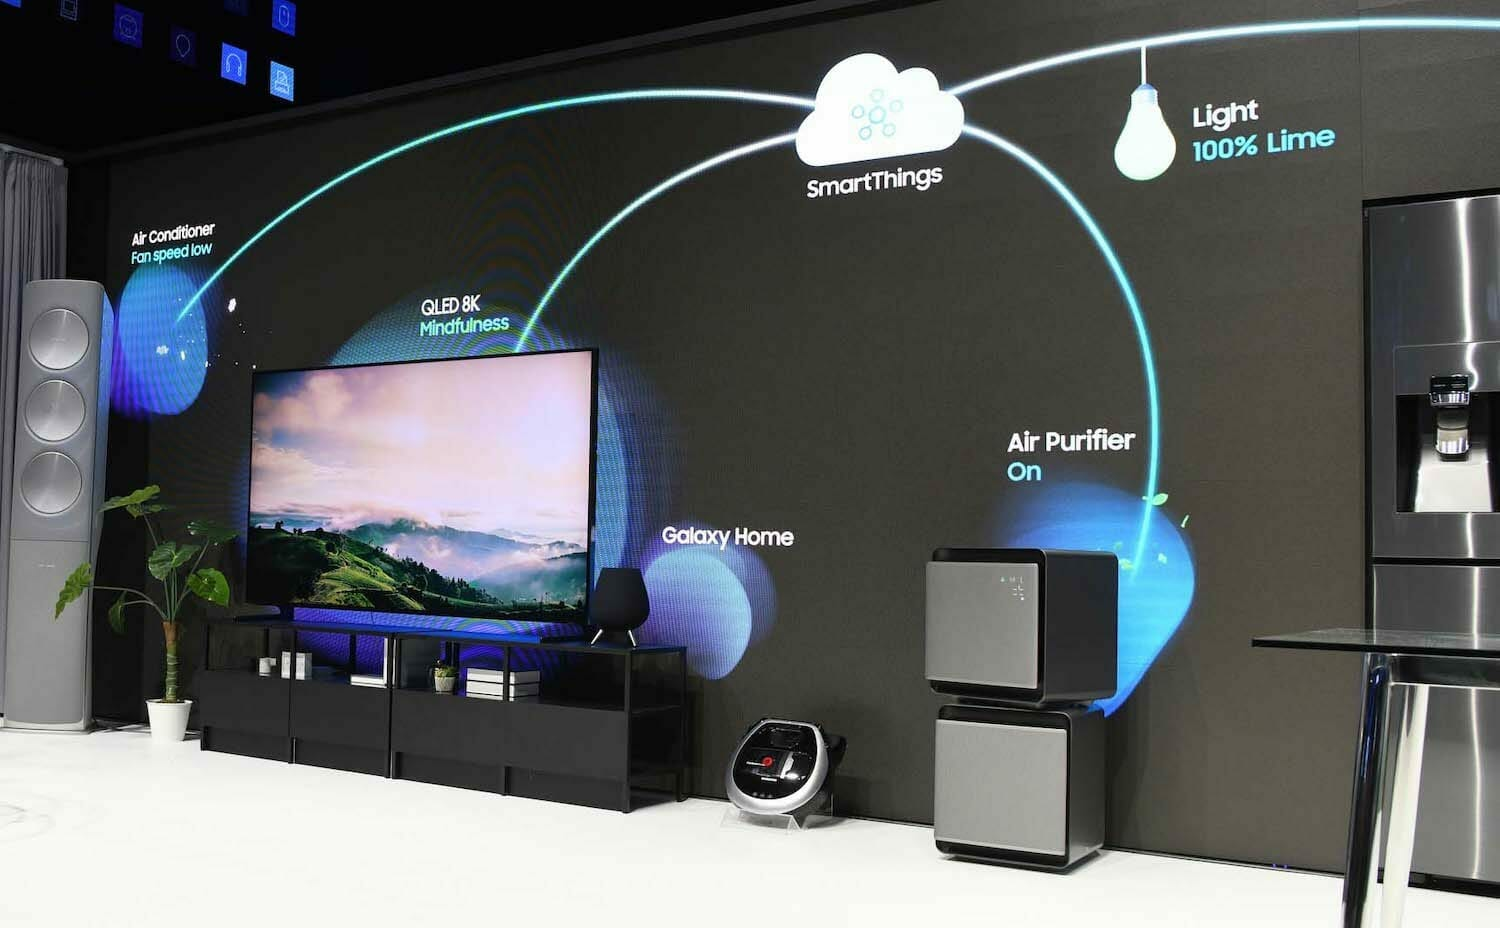 Samsung's SmartThings smart home demonstrated in a booth at a conference